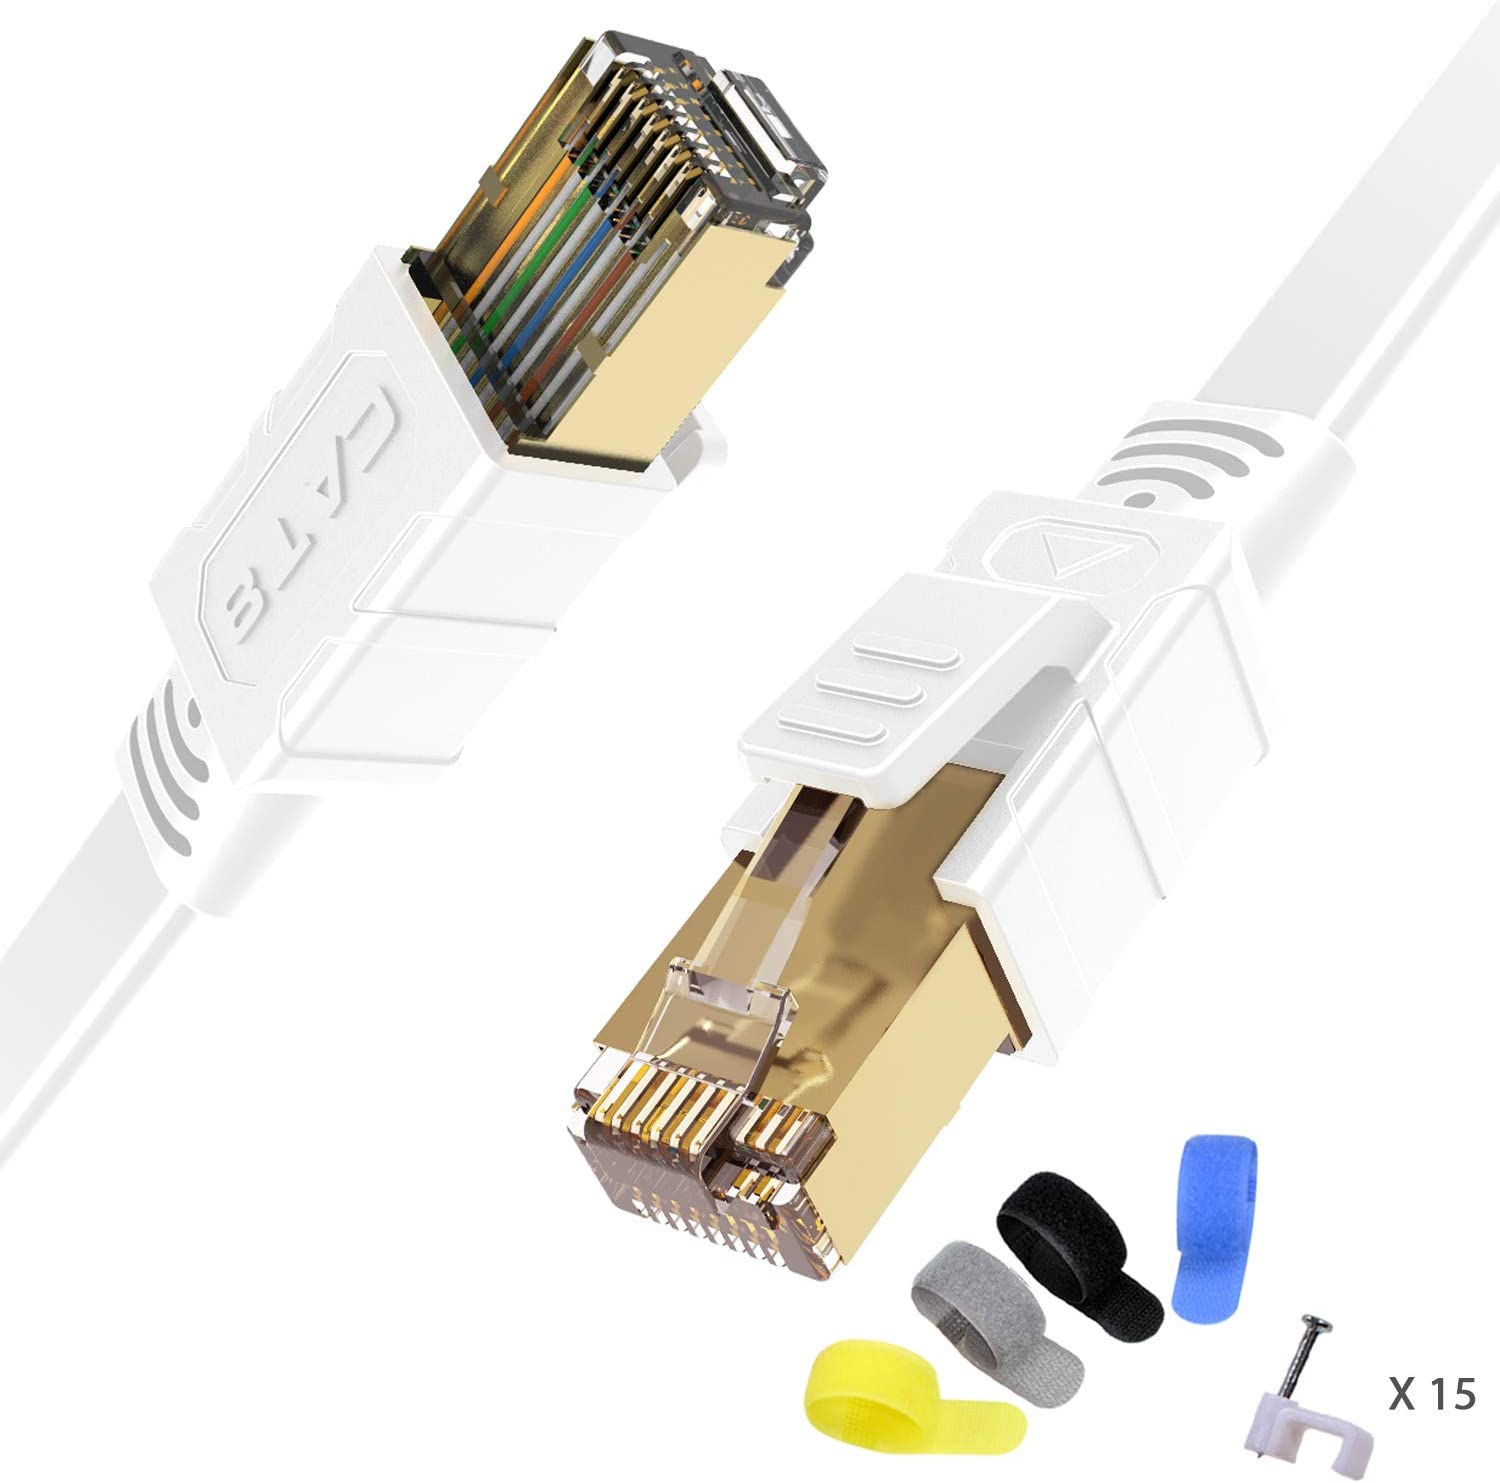 Cat8 10 Feet Shielded Ethernet Cable Router 26AWG Cat8 Network Cable 2 Pack Modem Network Cable Xbox Weatherproof 40Gbps 2000Mhz S//FTP LAN Cables for Gaming Gold Plated RJ45 Connectors PC